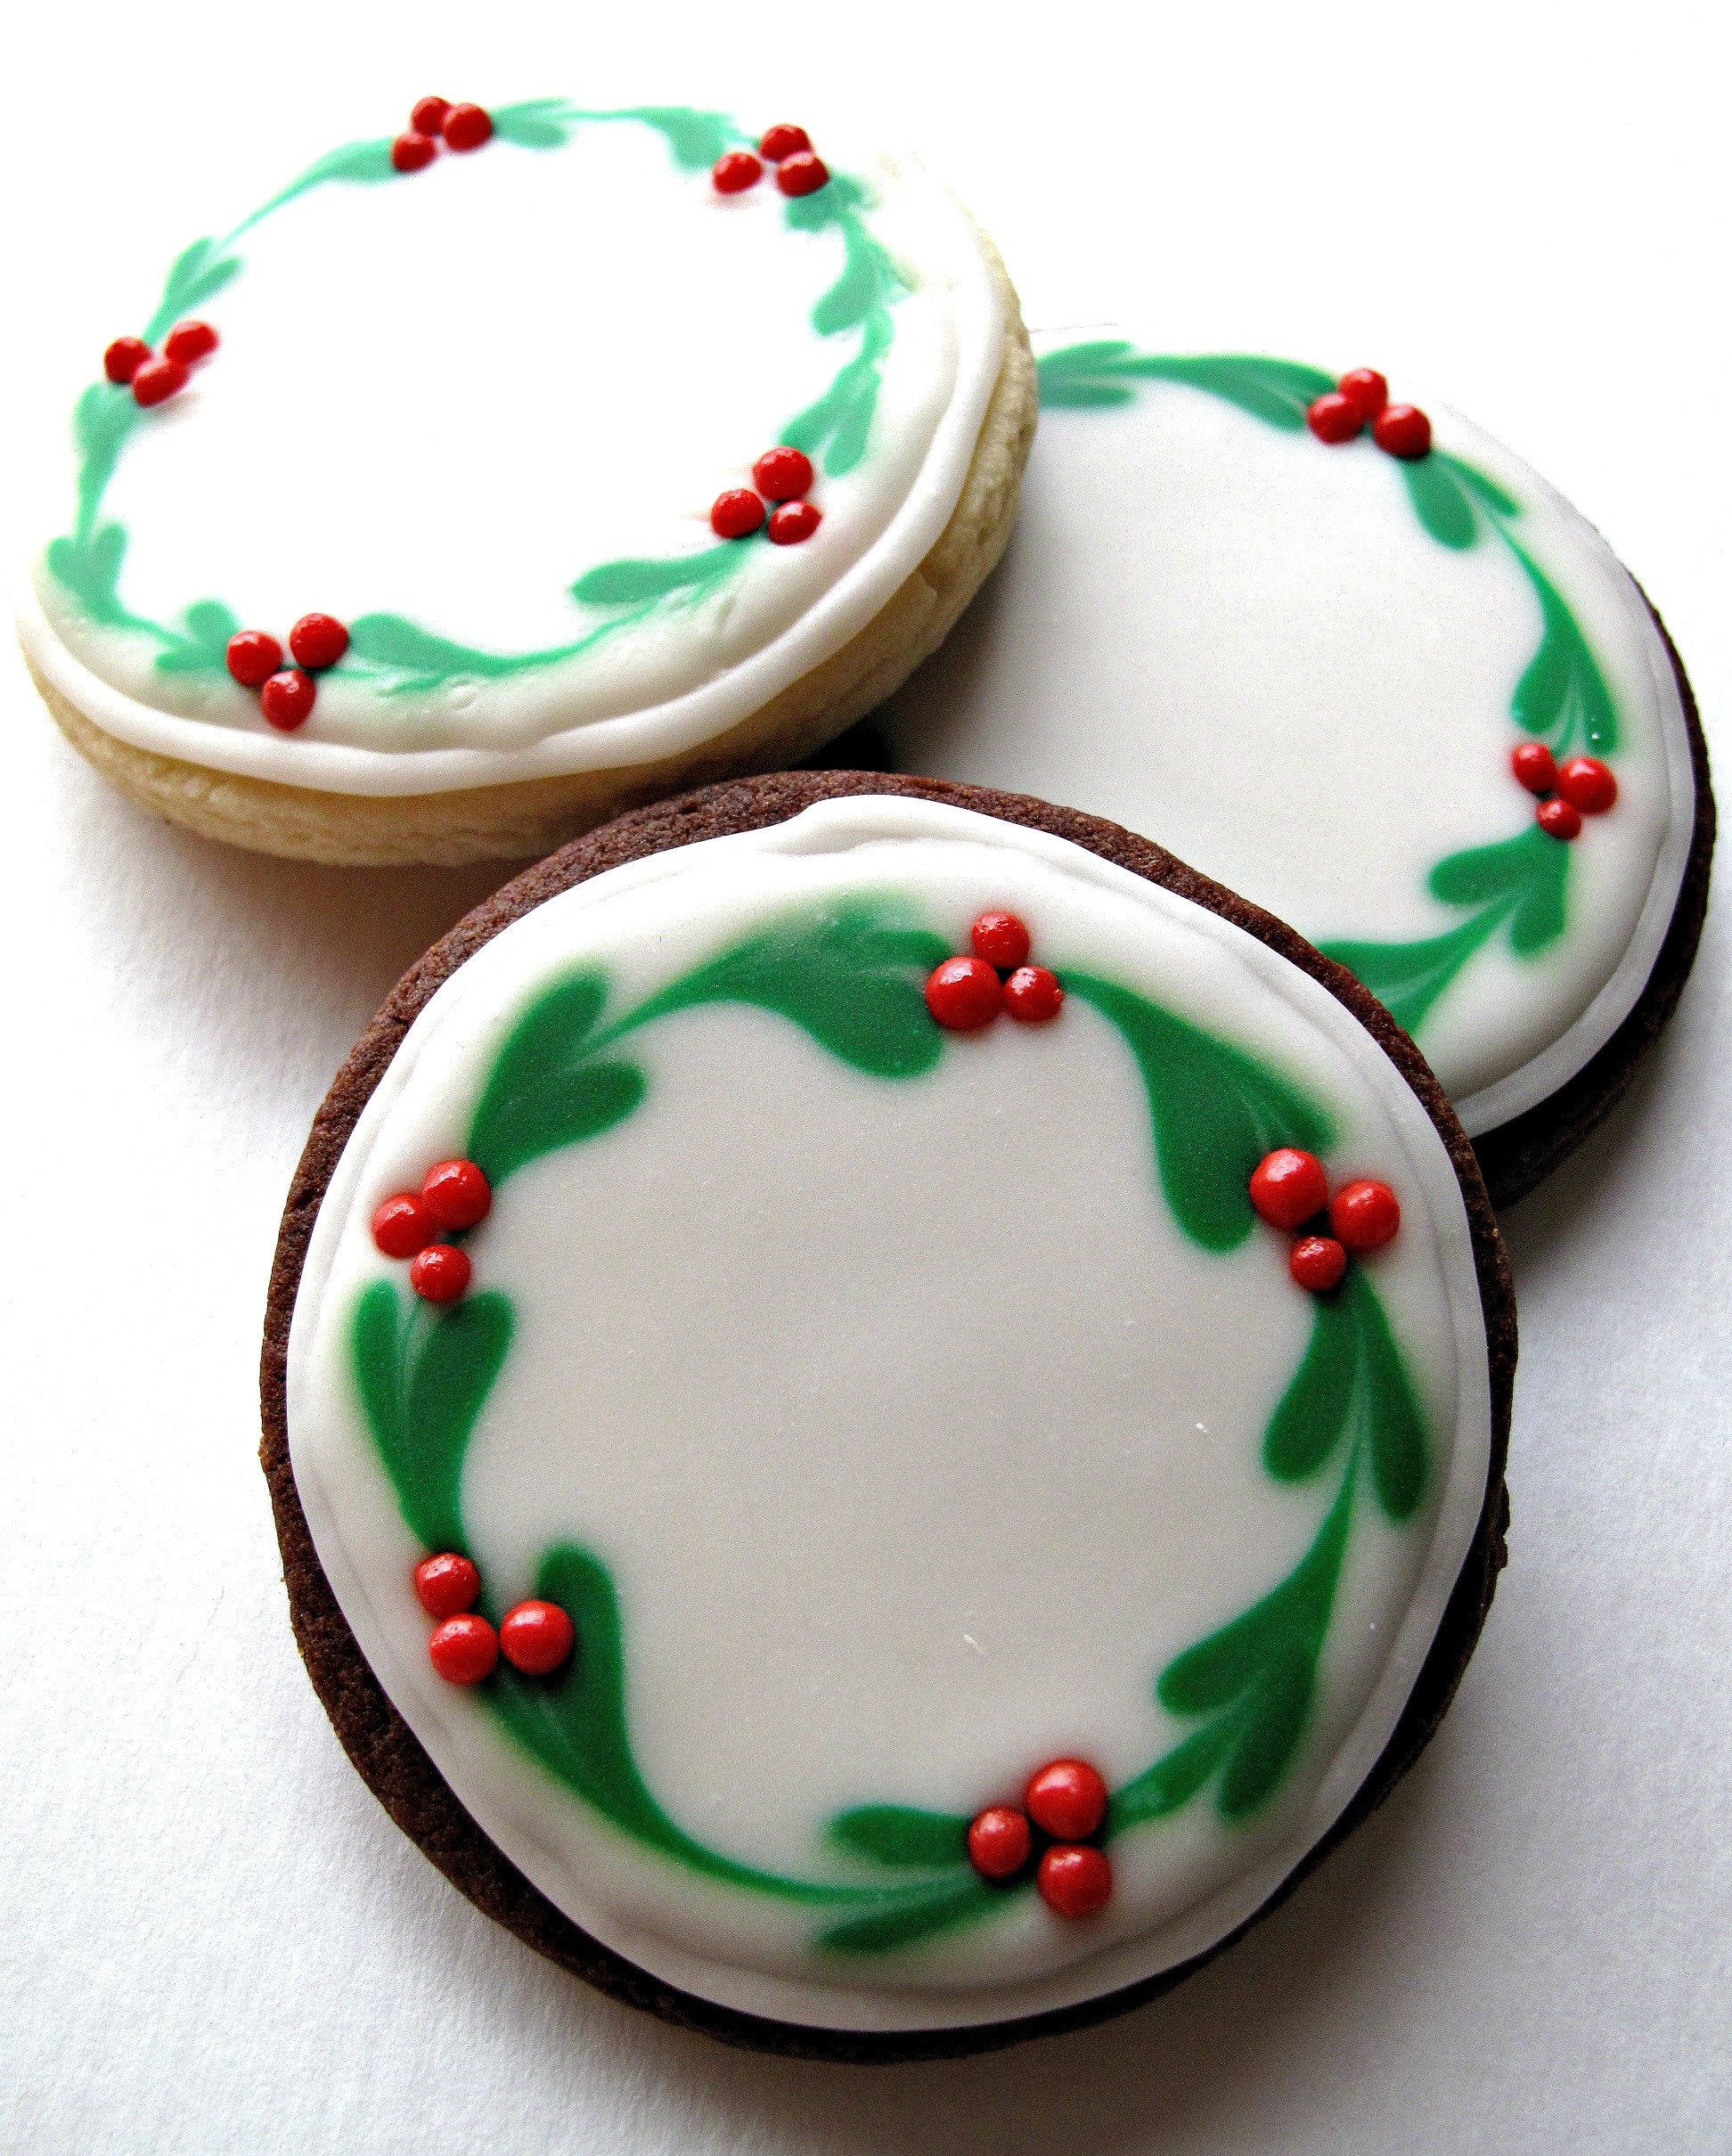 Sugar Christmas Cookies  Chocolate Covered Oreos and Iced Christmas Sugar Cookies